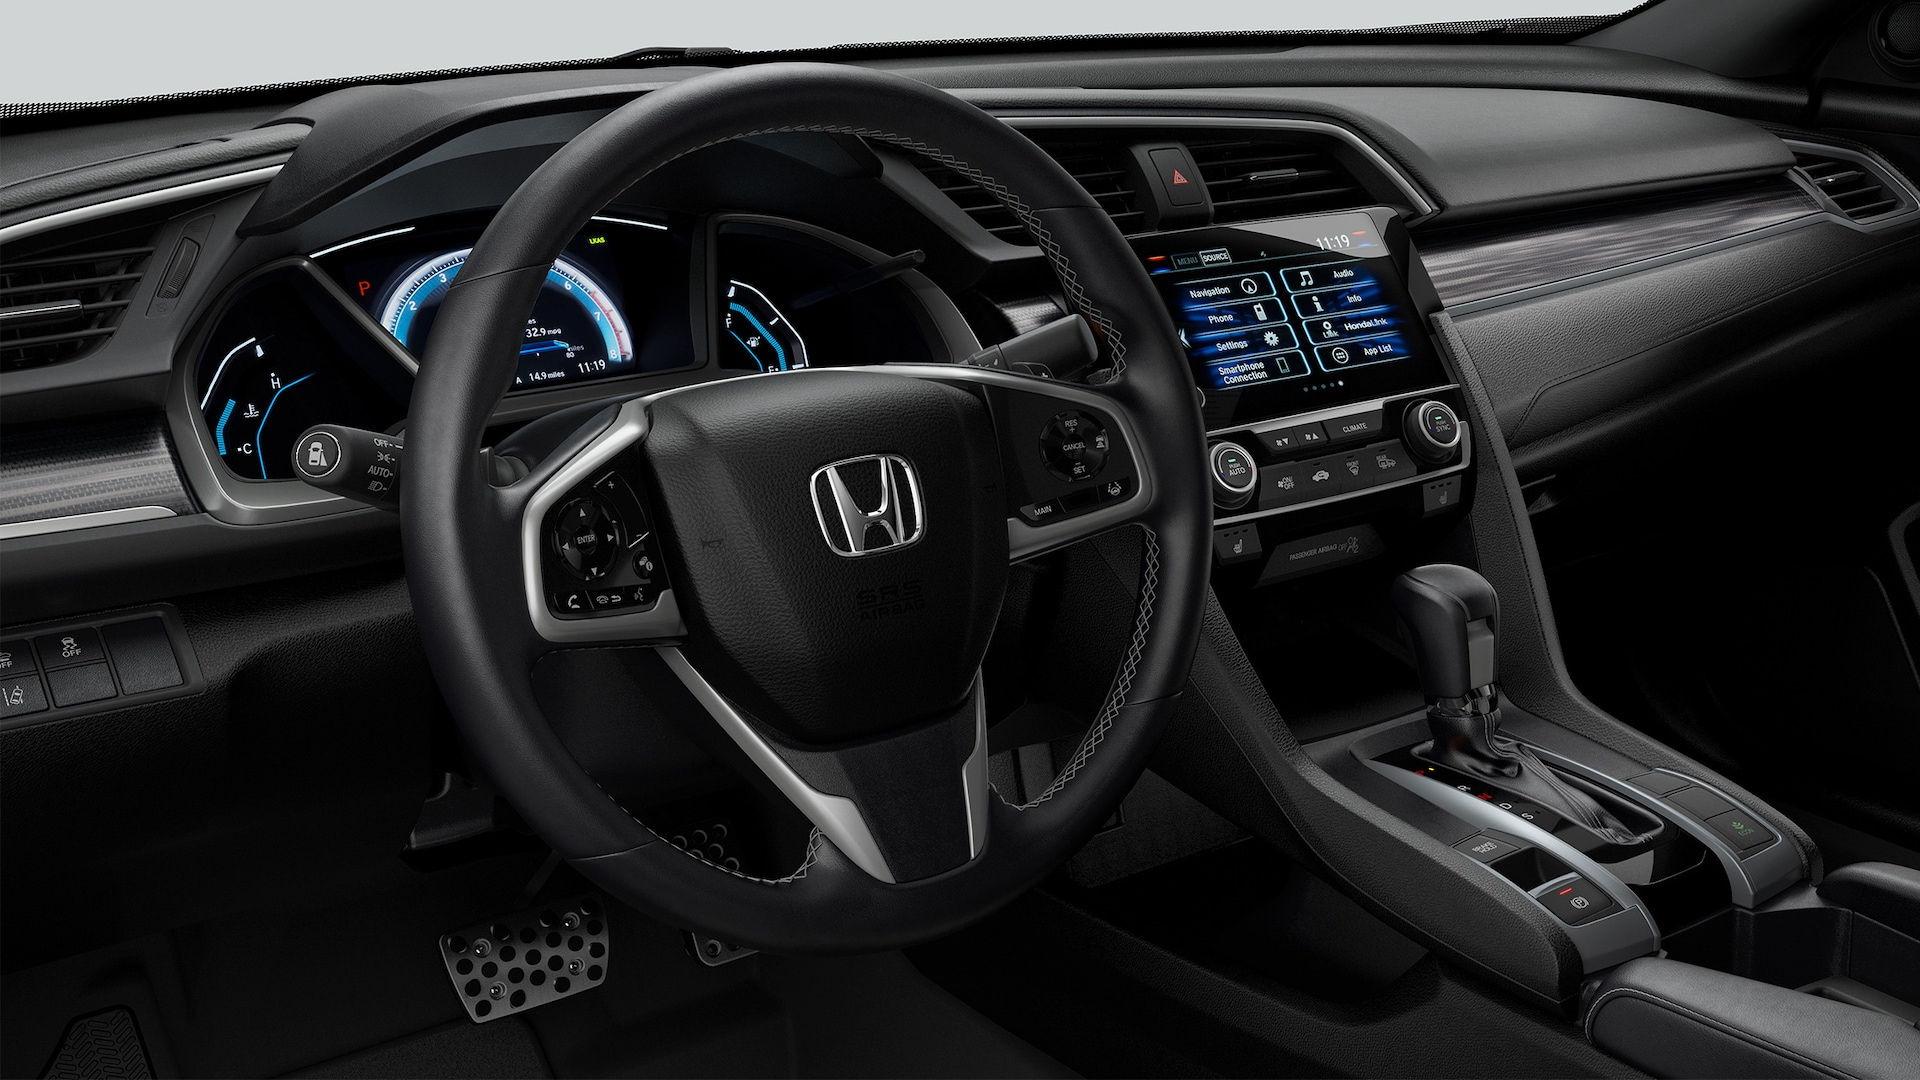 Vista del panel de instrumentos desde el asiento del conductor del Honda Civic Touring Coupé 2020 con Black Leather.